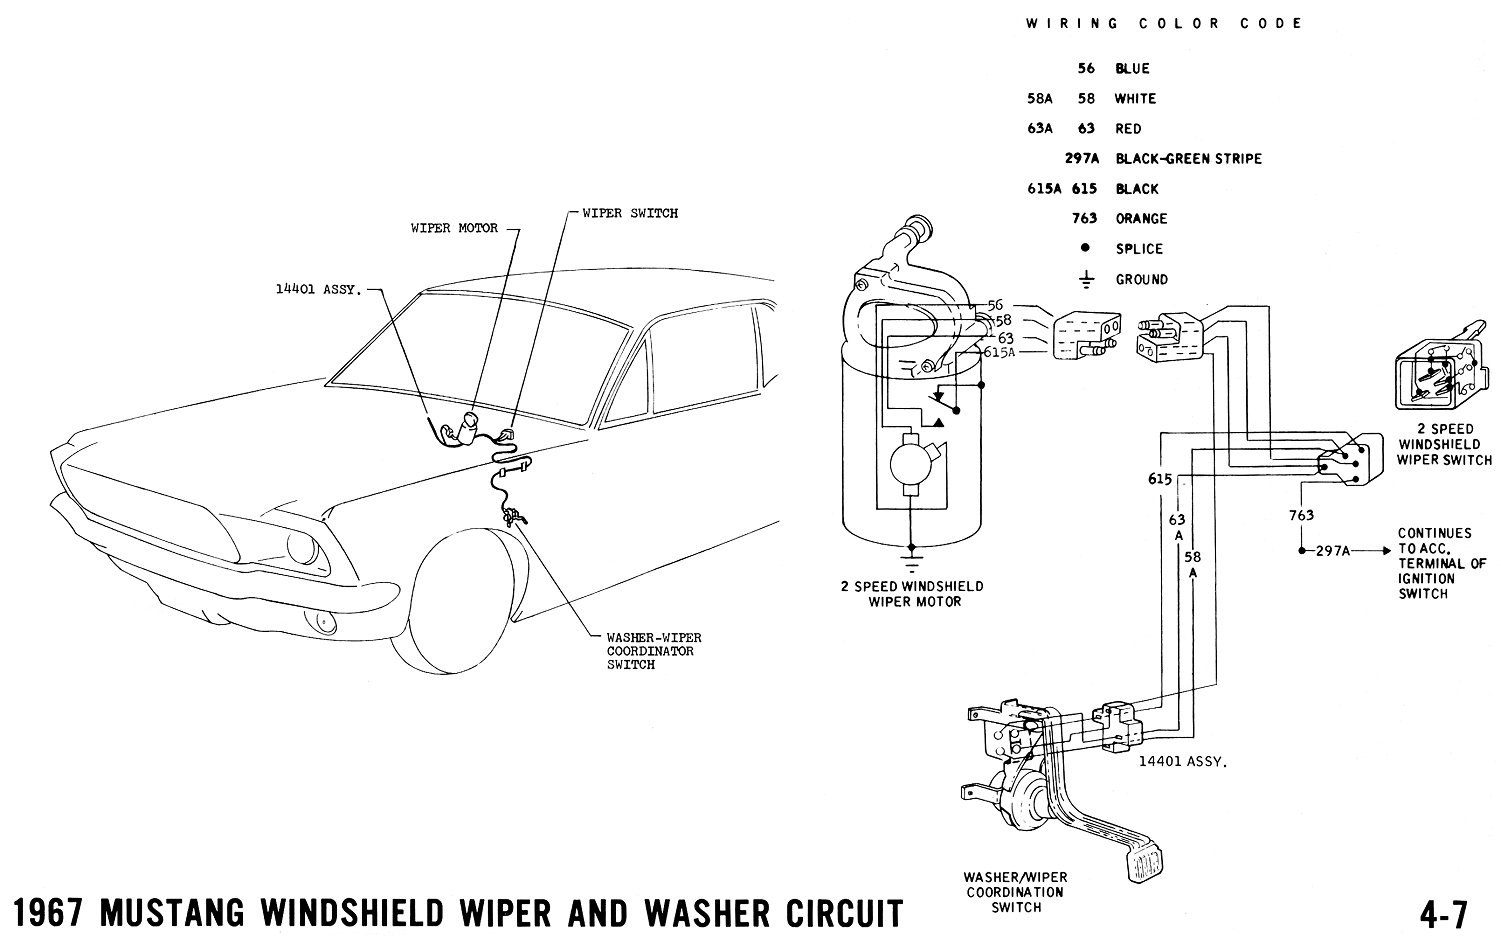 1967 Mustang Wiring And Vacuum Diagrams Average Joe Restoration 1966 Nova Wiper Diagram Schematic Pictorial